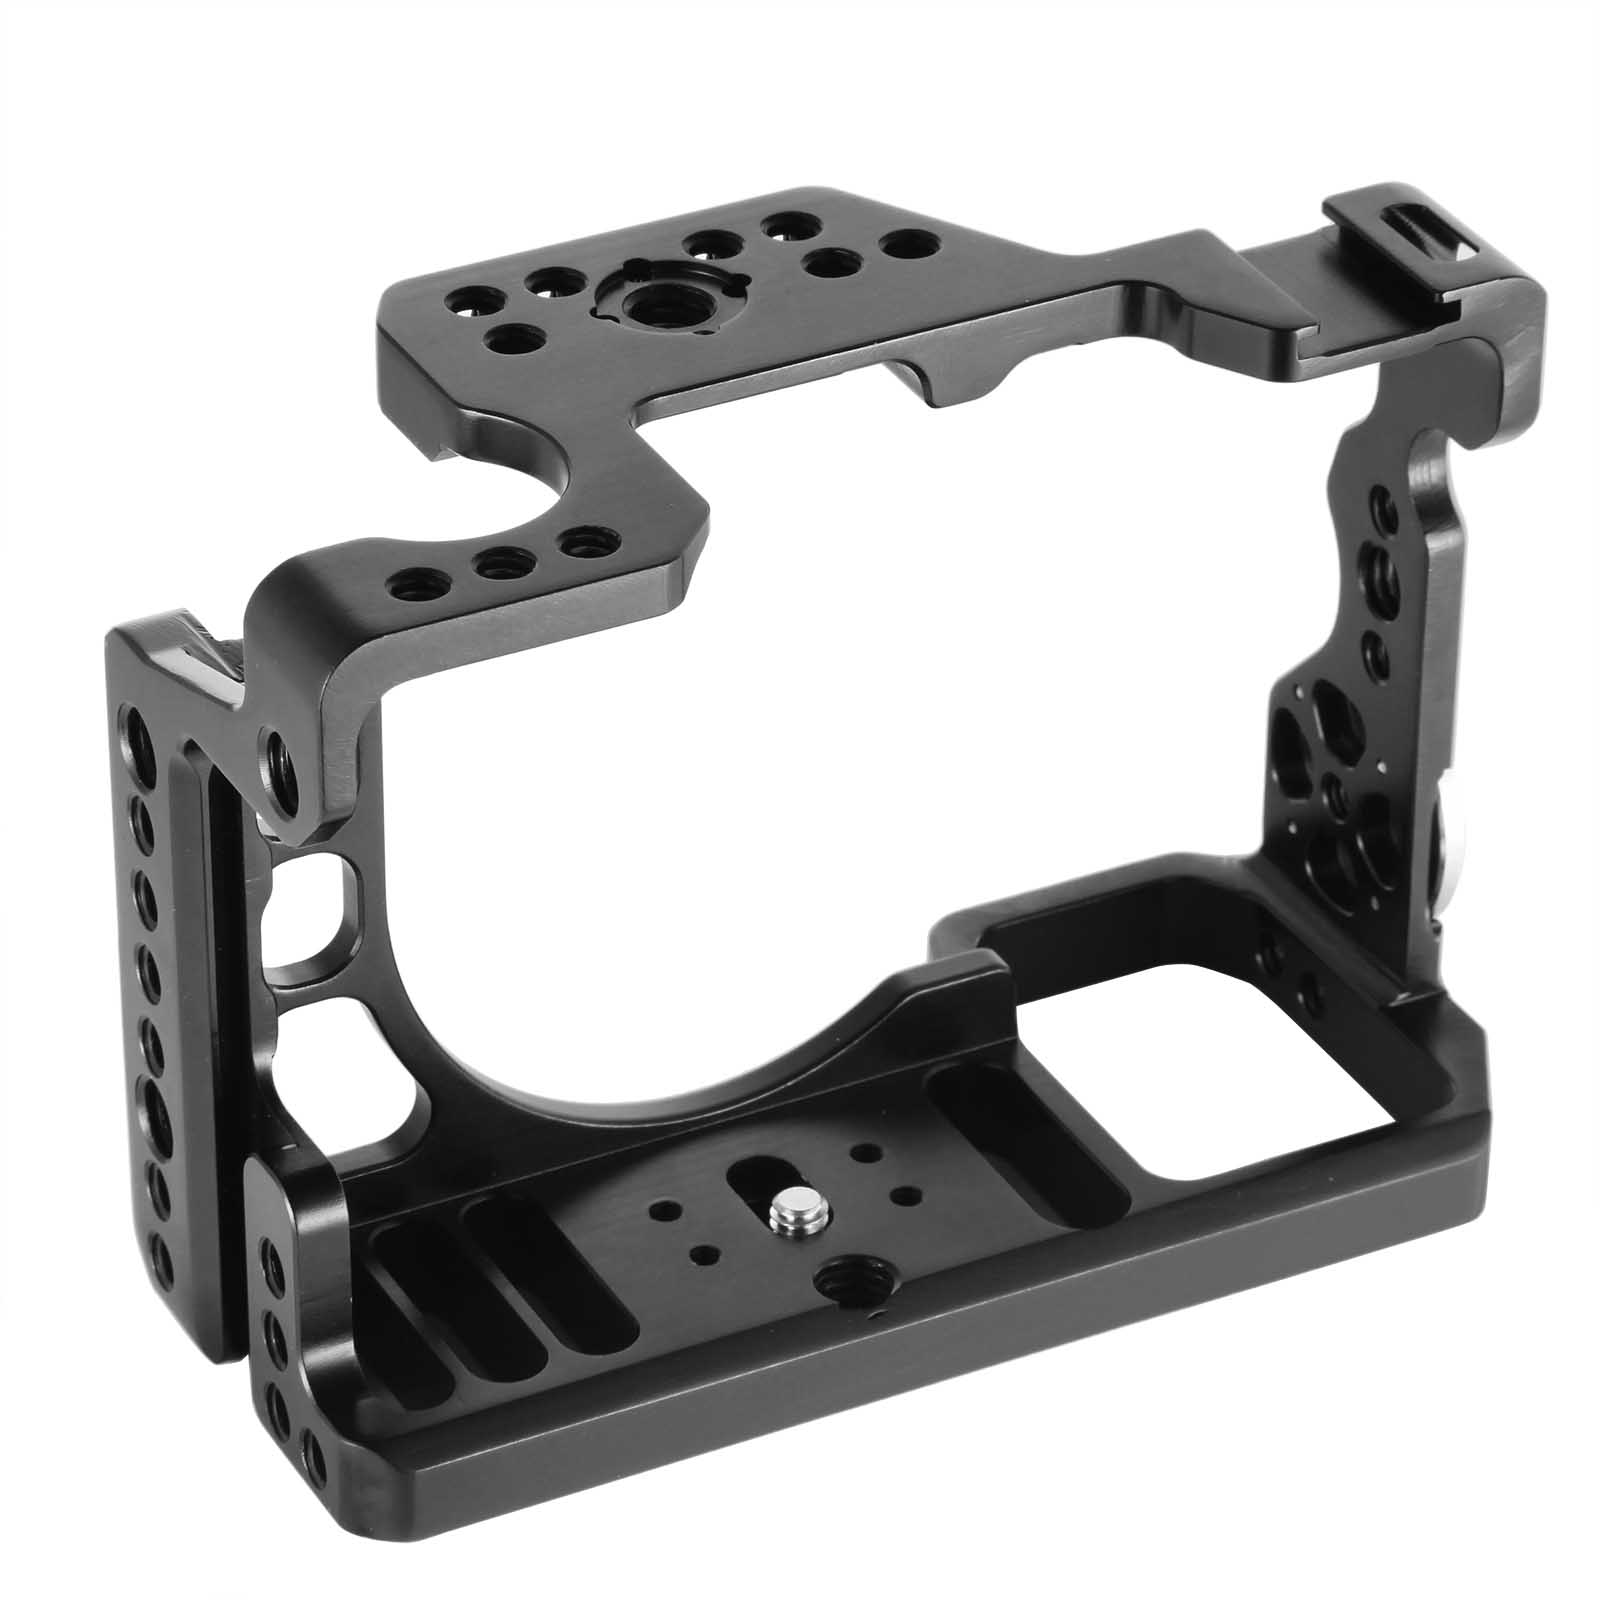 SmallRig Cage for Sony A9 2013 DSLR Video Supports & Rigs Cages & Accessories